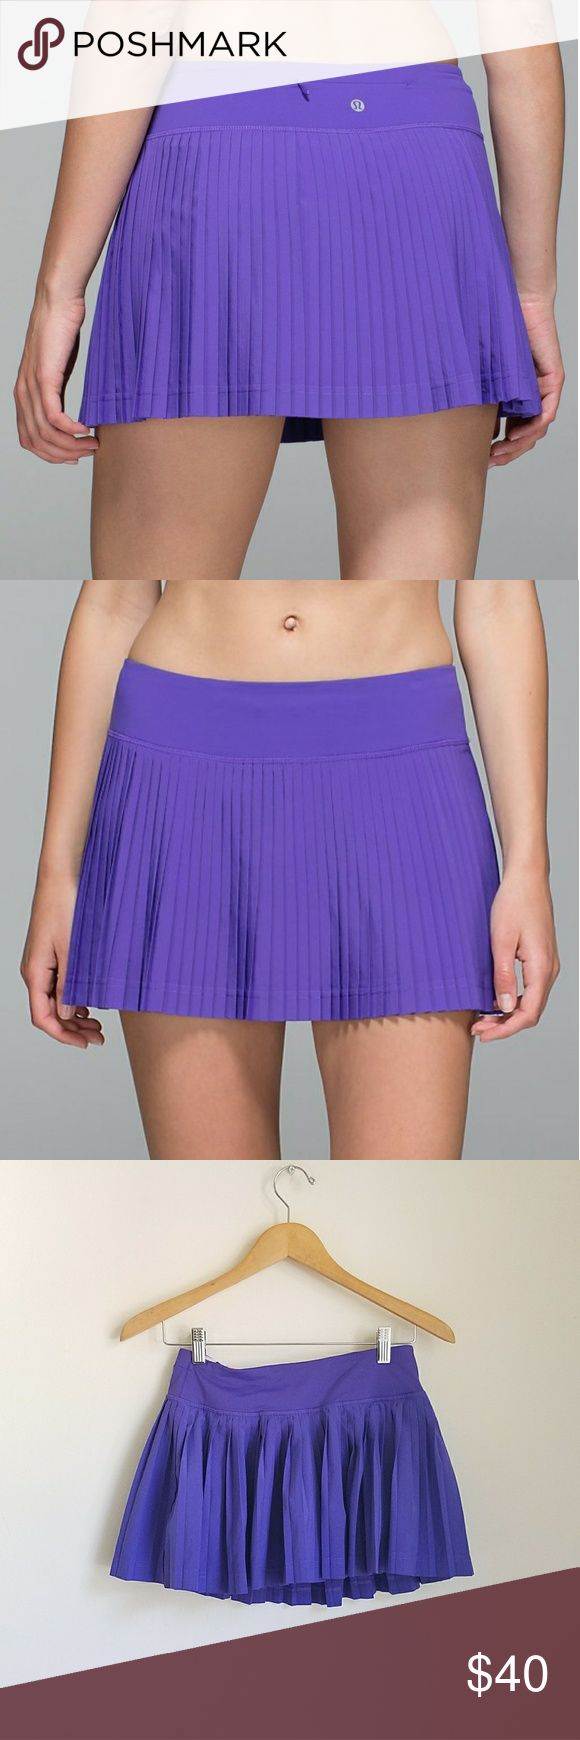 """Lululemon pleat to street running skort in violet Lululemon pleat to street running skirt. Purple combo. Size 4. Inbuilt shorts under.  Second skin fit, light weight, breathable and added Lycra  for stretch and comfort ♡   Measurements flat, without stretching:  Waist: 13"""" Lenght: 12""""   ● 20% off on bundles   Lulemon athletica skirt skort running runners sport gym attire clothes shorts lululemon athletica Shorts"""